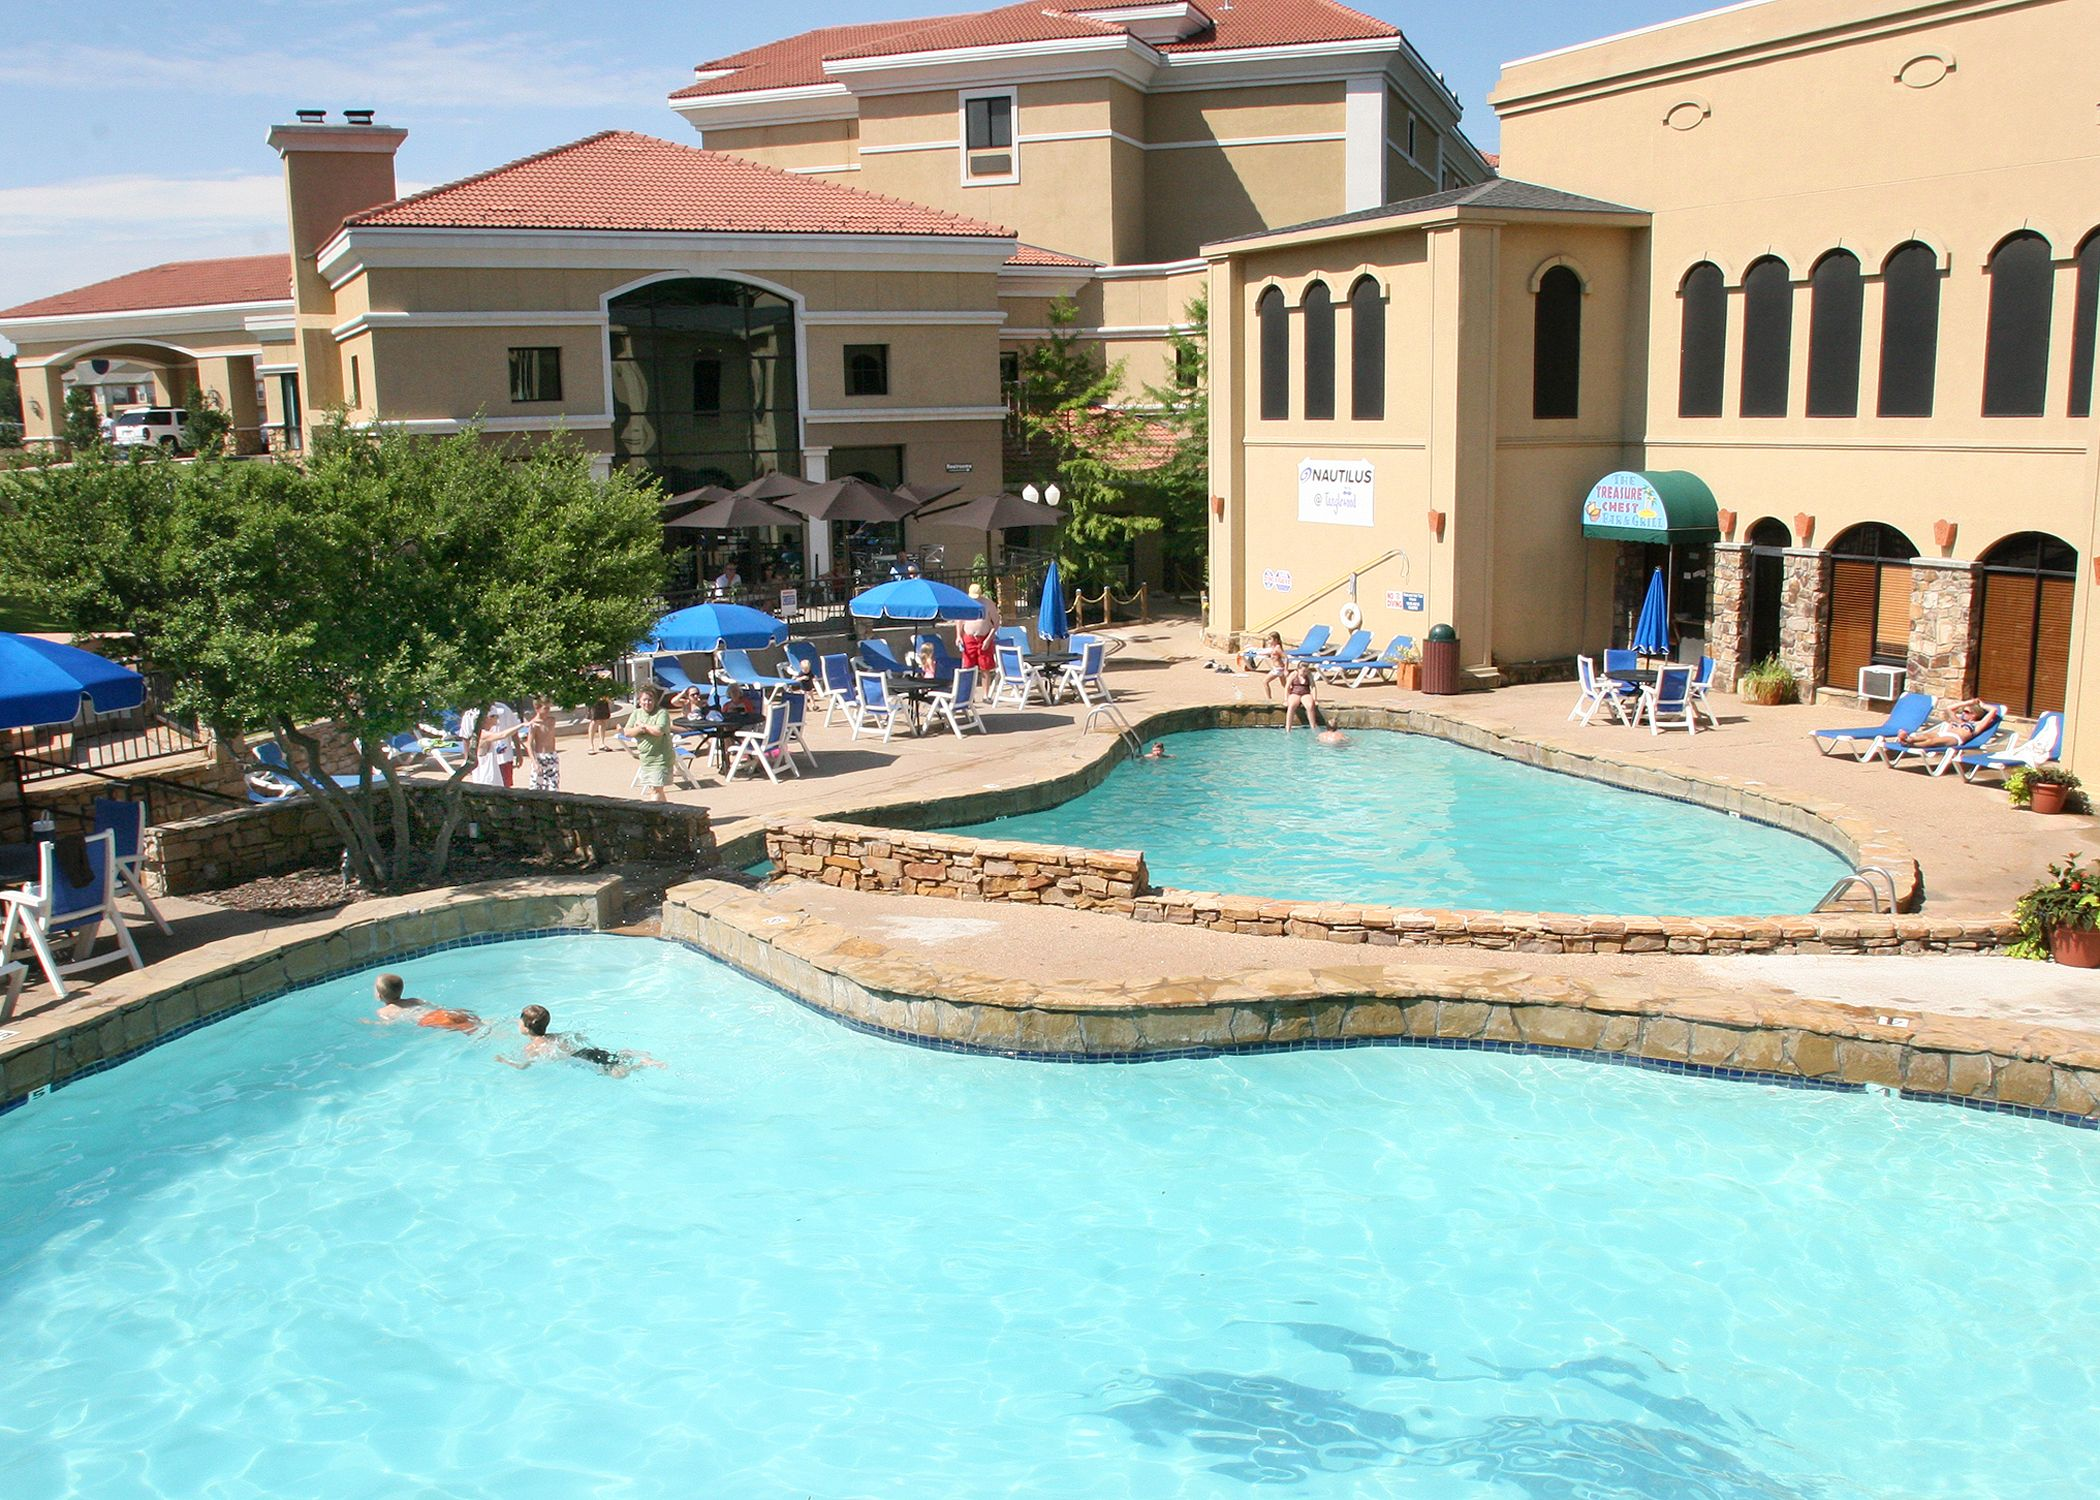 The outdoor pool at Tanglewood Resort and Conference Center (Pottsboro, TX)  - ResortsandLodges